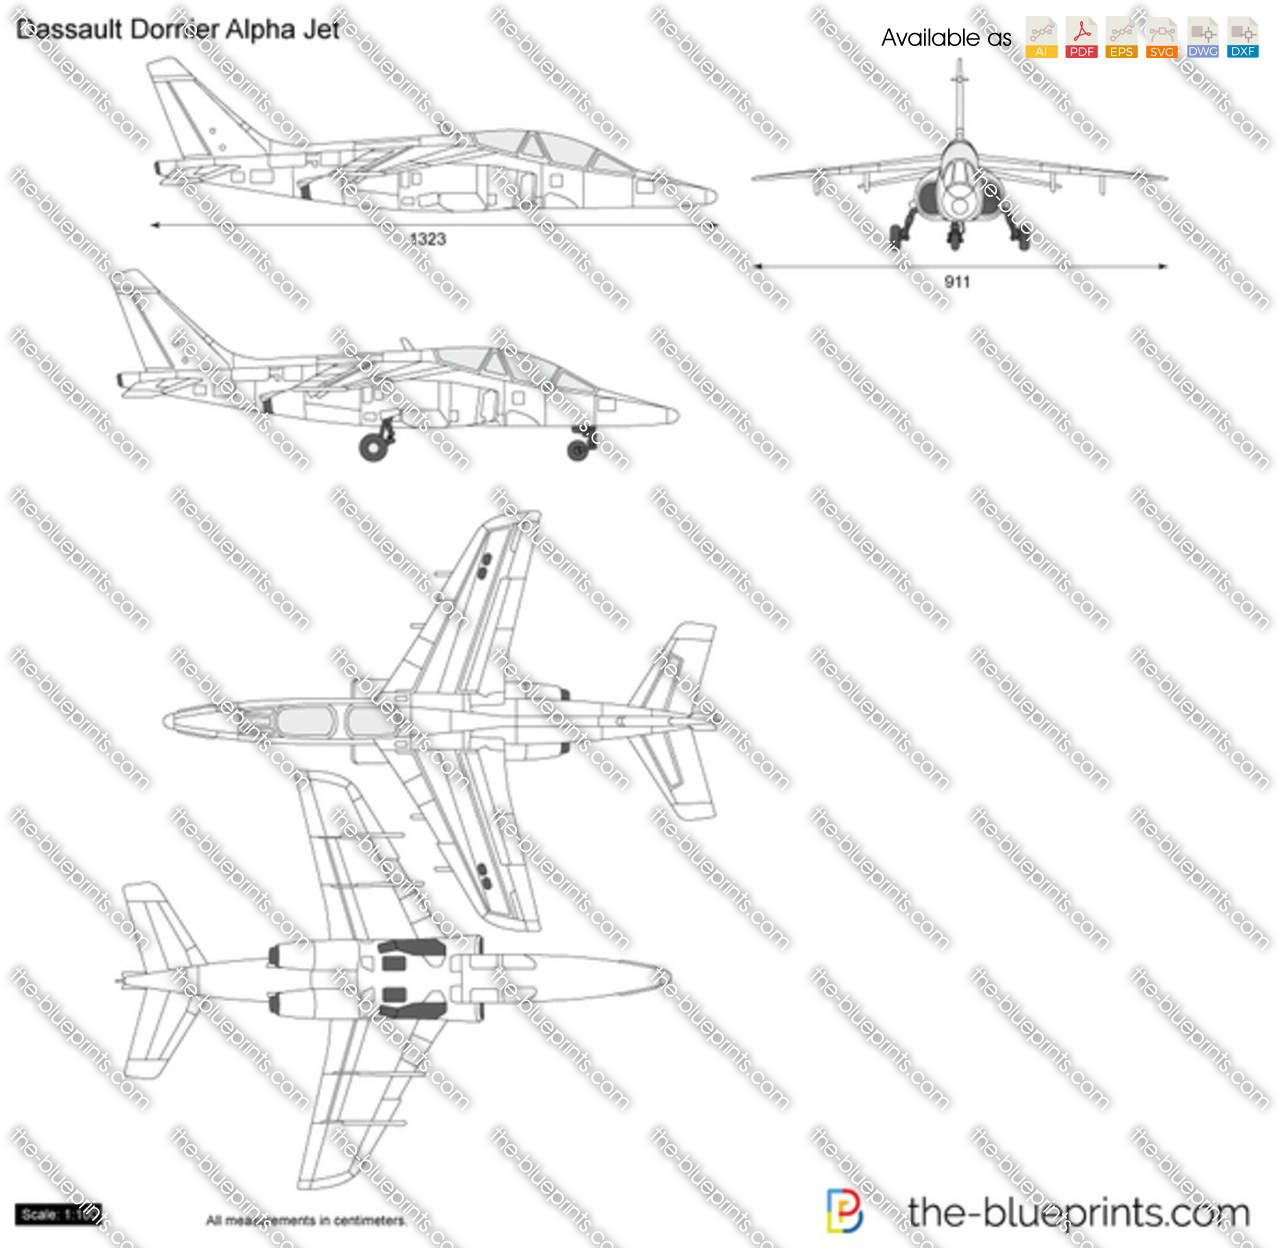 The blueprints vector drawing dassault dornier alpha jet dassault dornier alpha jet malvernweather Choice Image